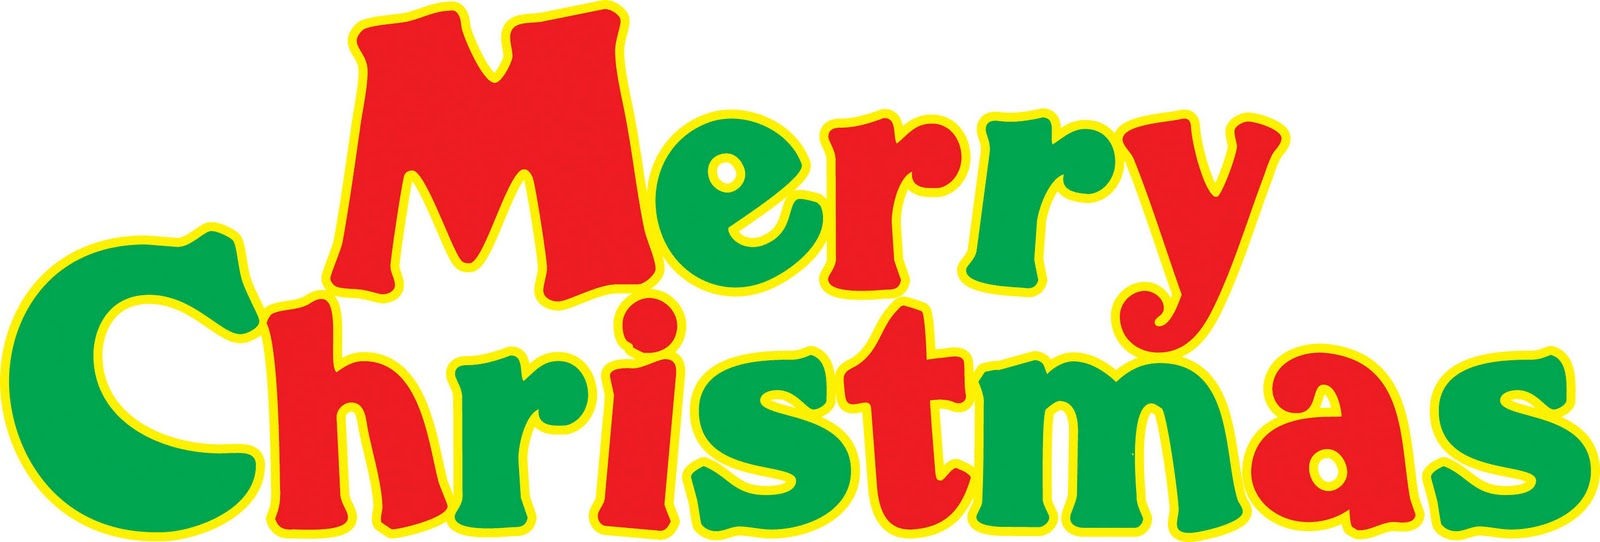 1600x542 Free Christmas Clip Art Banners Clipart Images